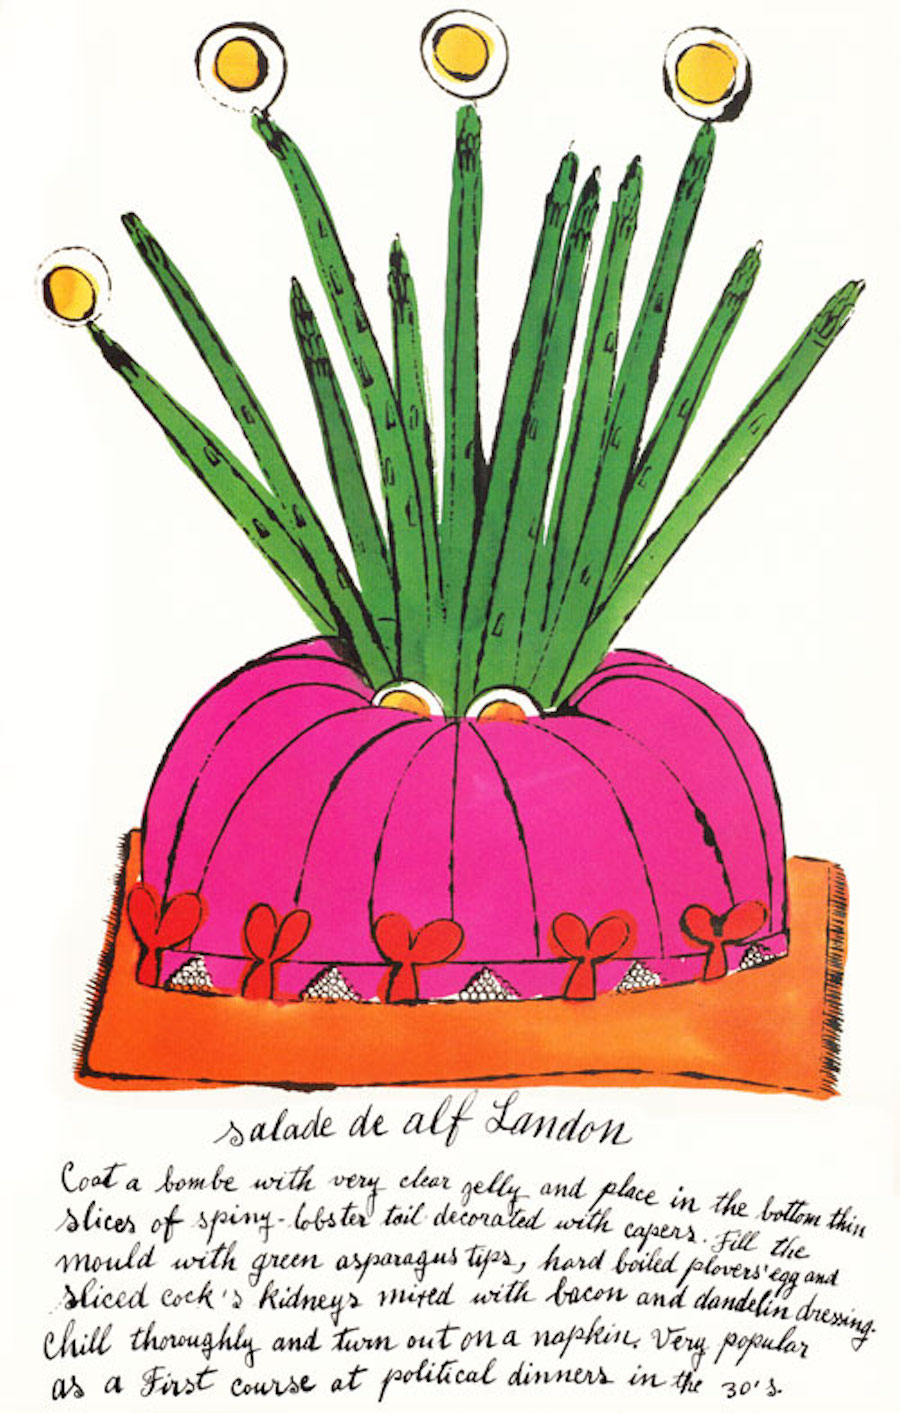 Salad de Alf Landon by Andy Warhol